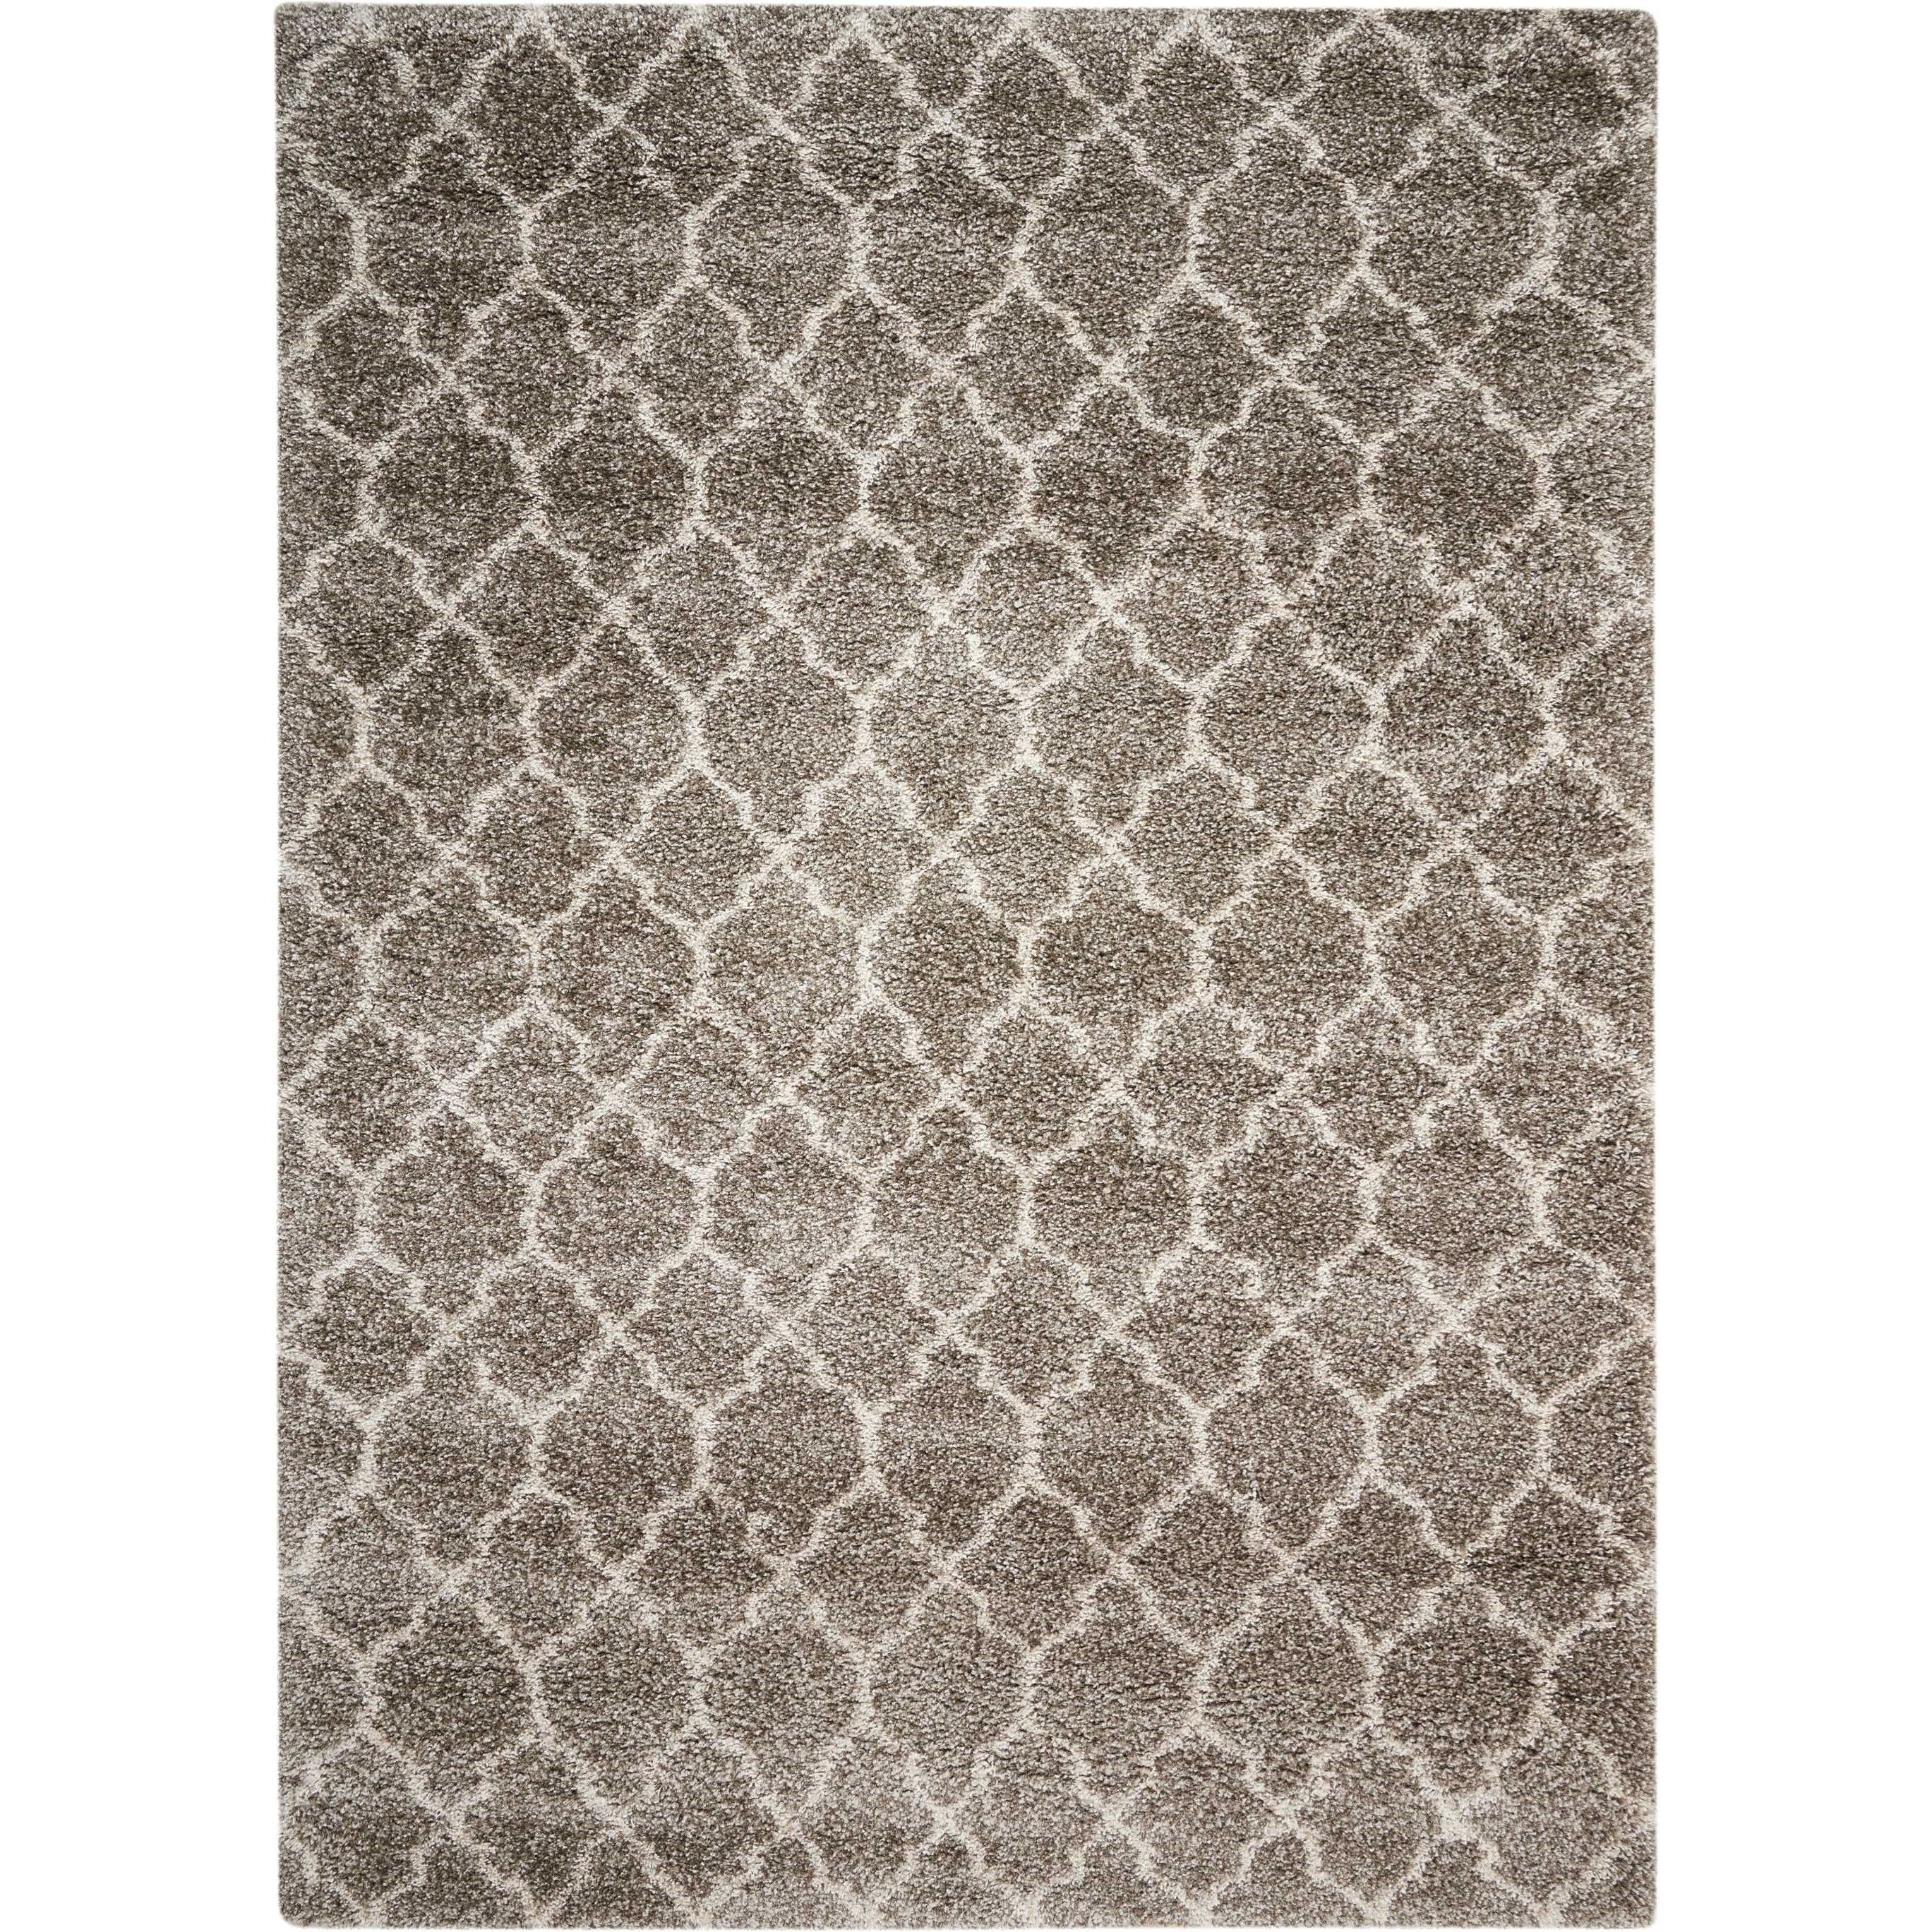 """Amore 7'10"""" x 10'10"""" Stone Rectangle Rug by Nourison at Sprintz Furniture"""